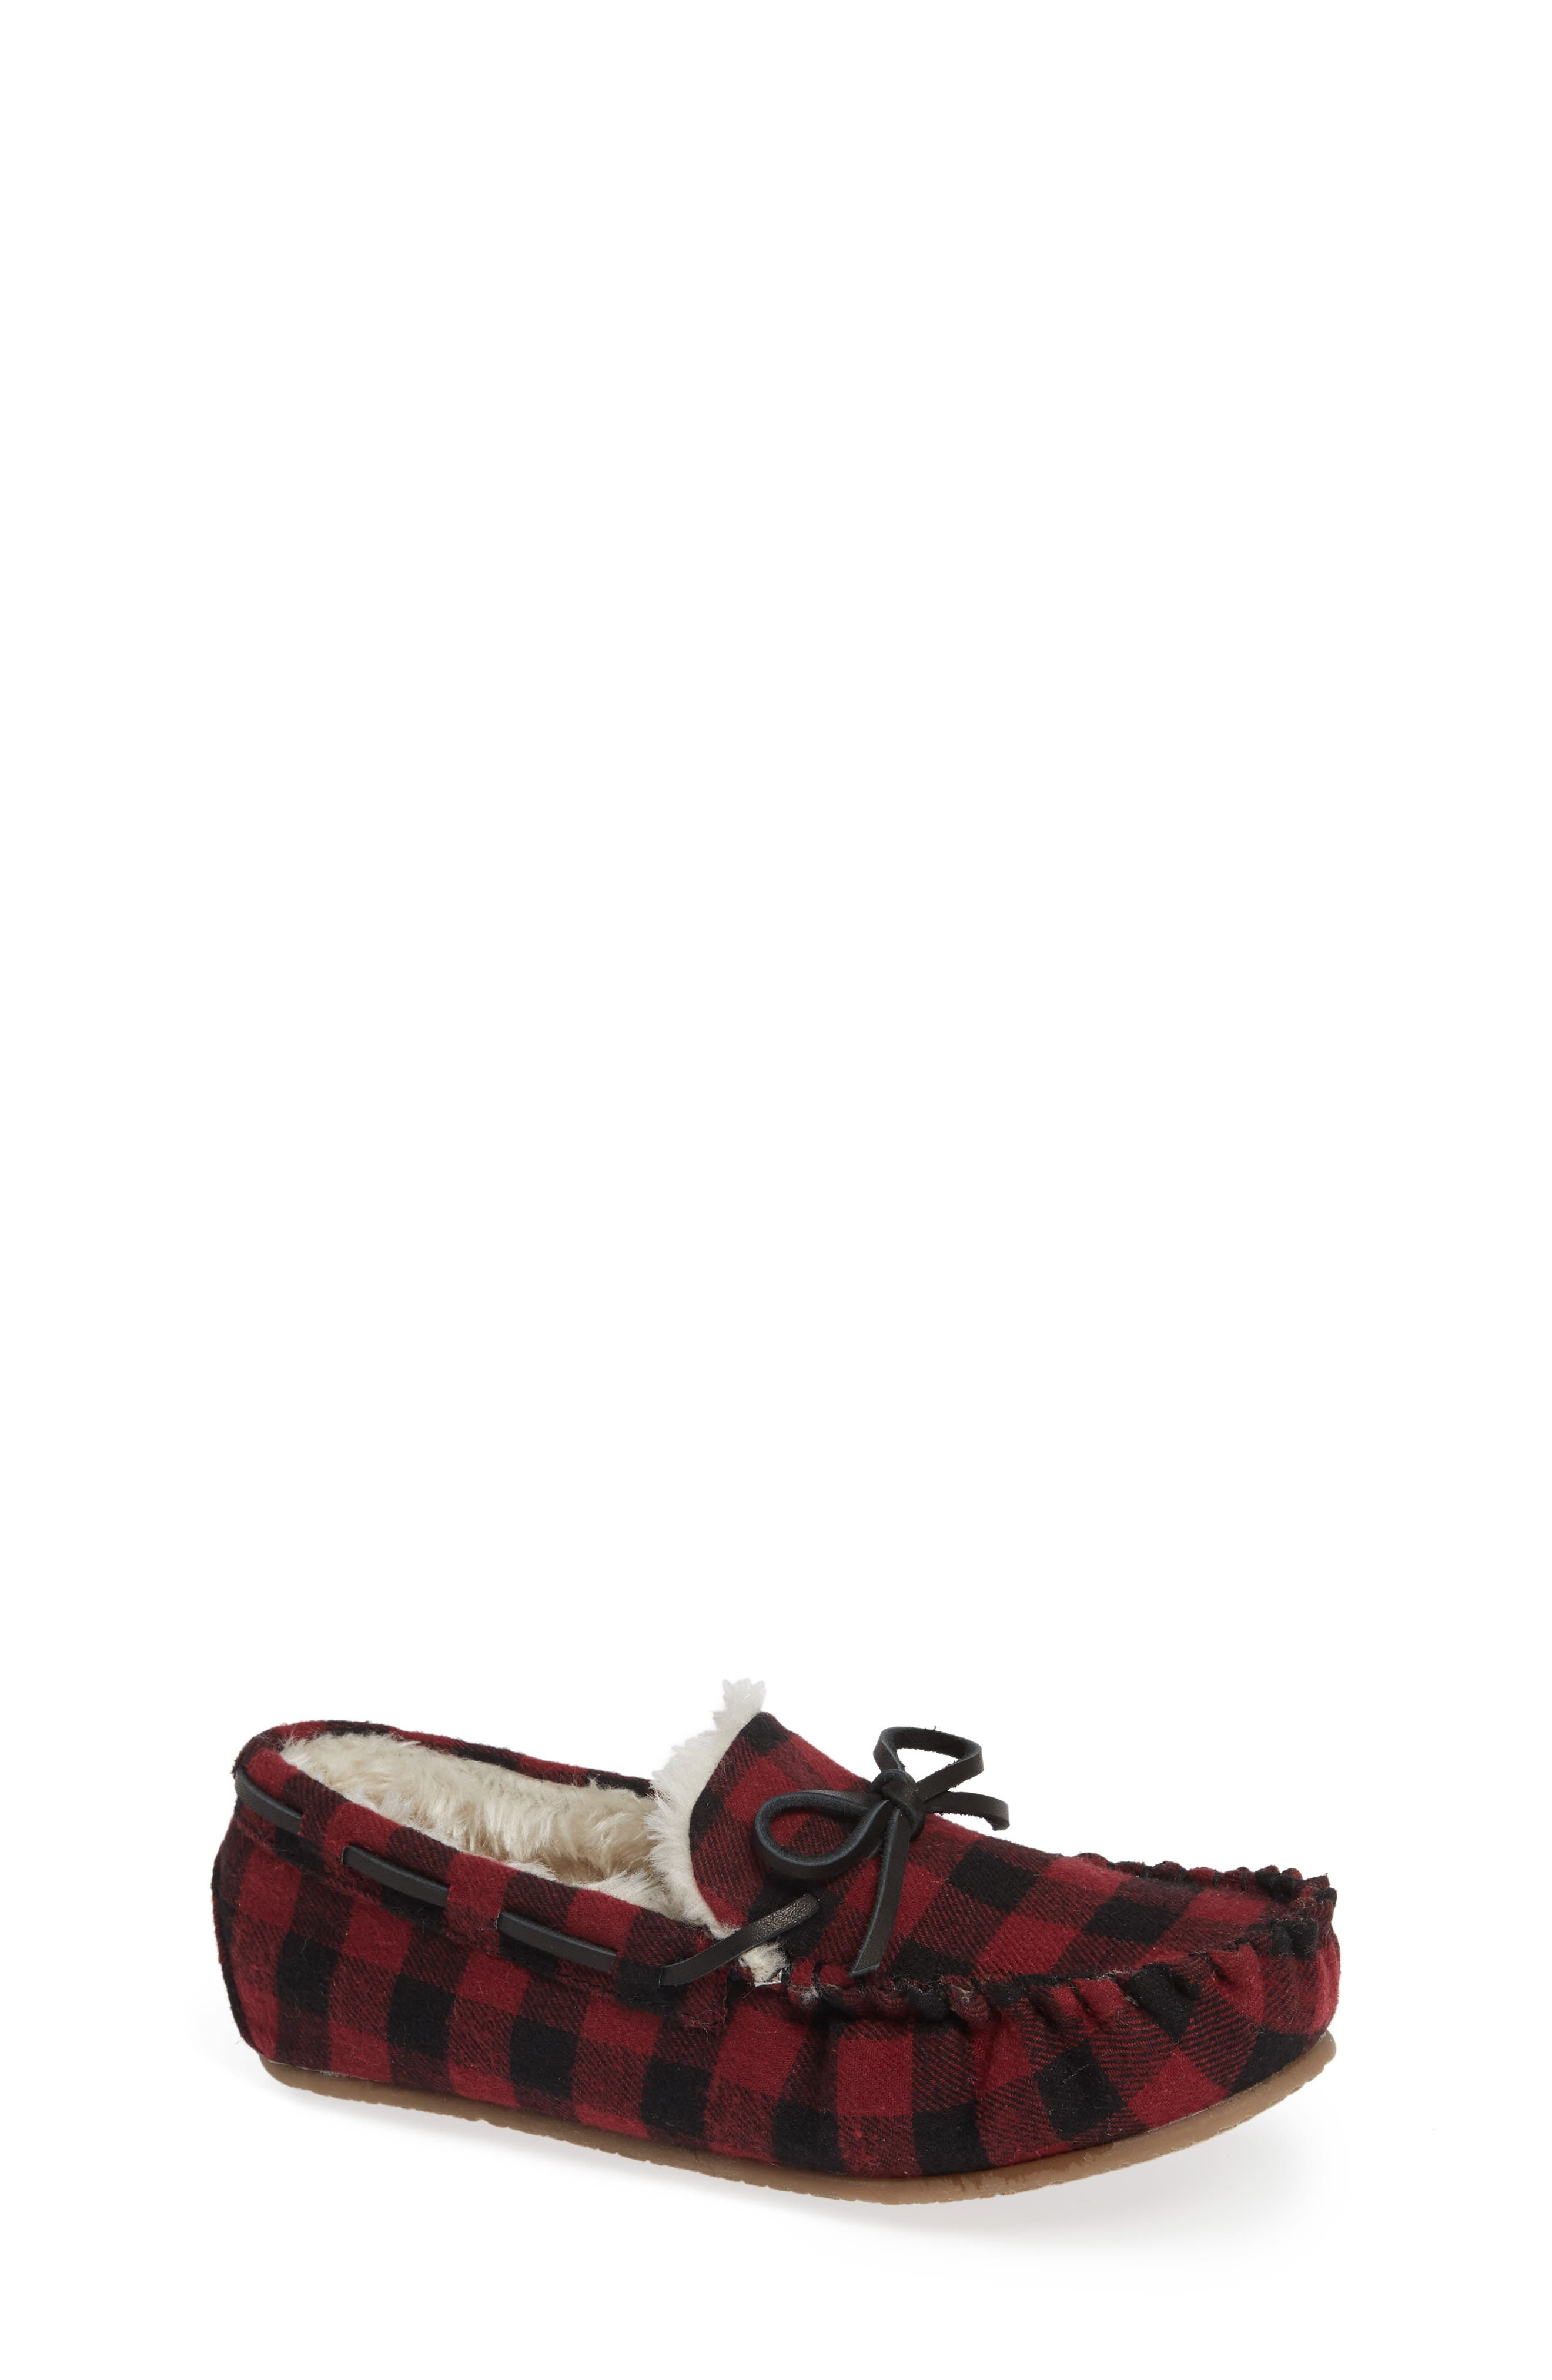 Max Faux Fur Moccasin Slipper,                             Main thumbnail 1, color,                             600